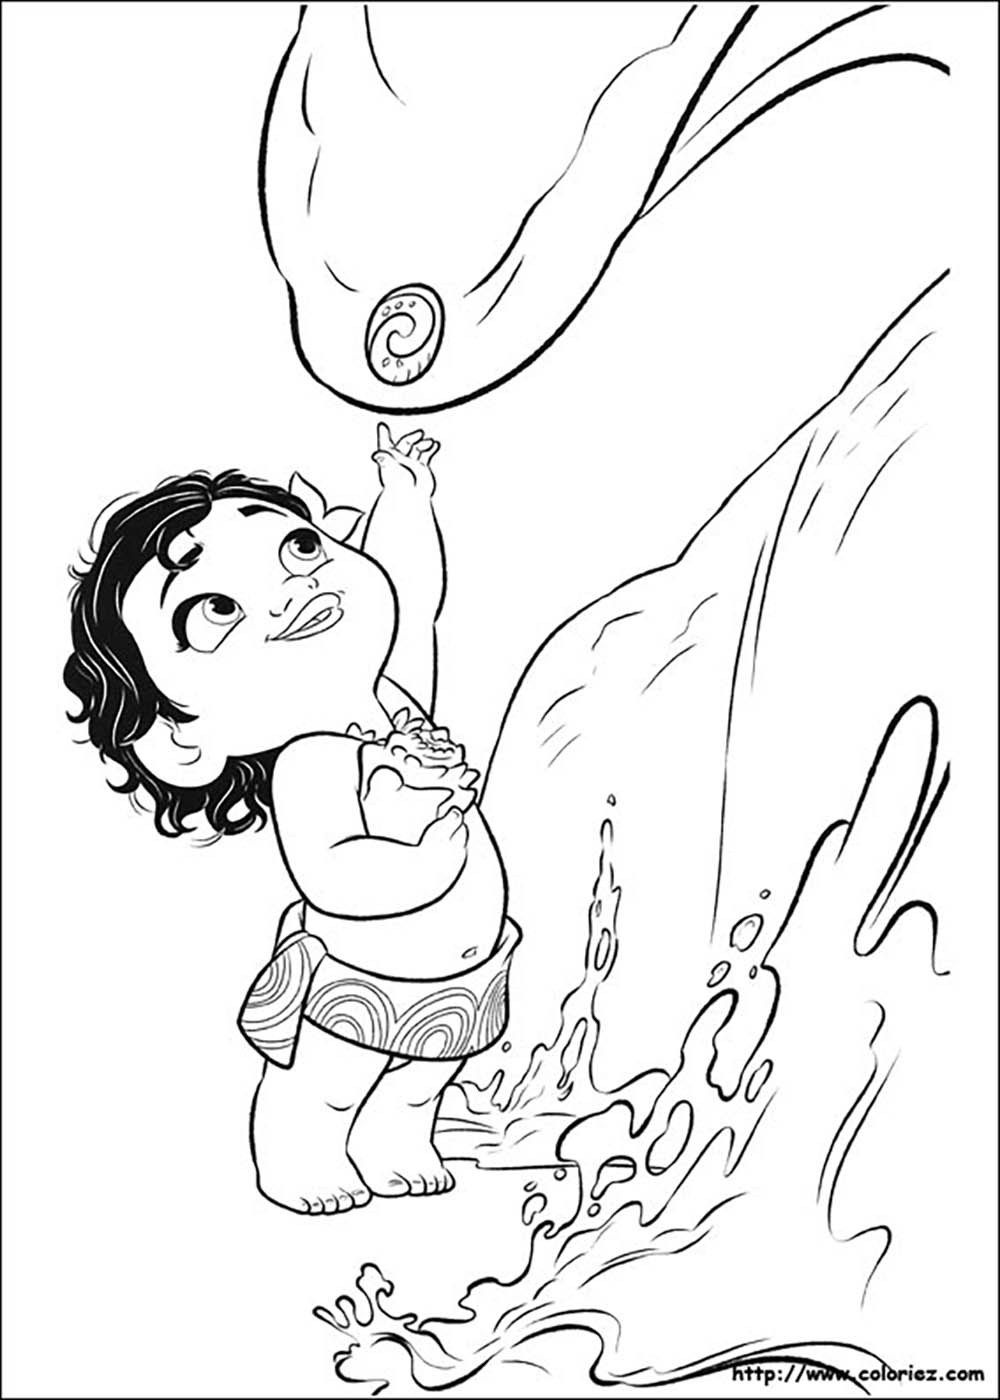 25 Excellent Picture Of Moana Coloring Pages Pdf Dibujos Para